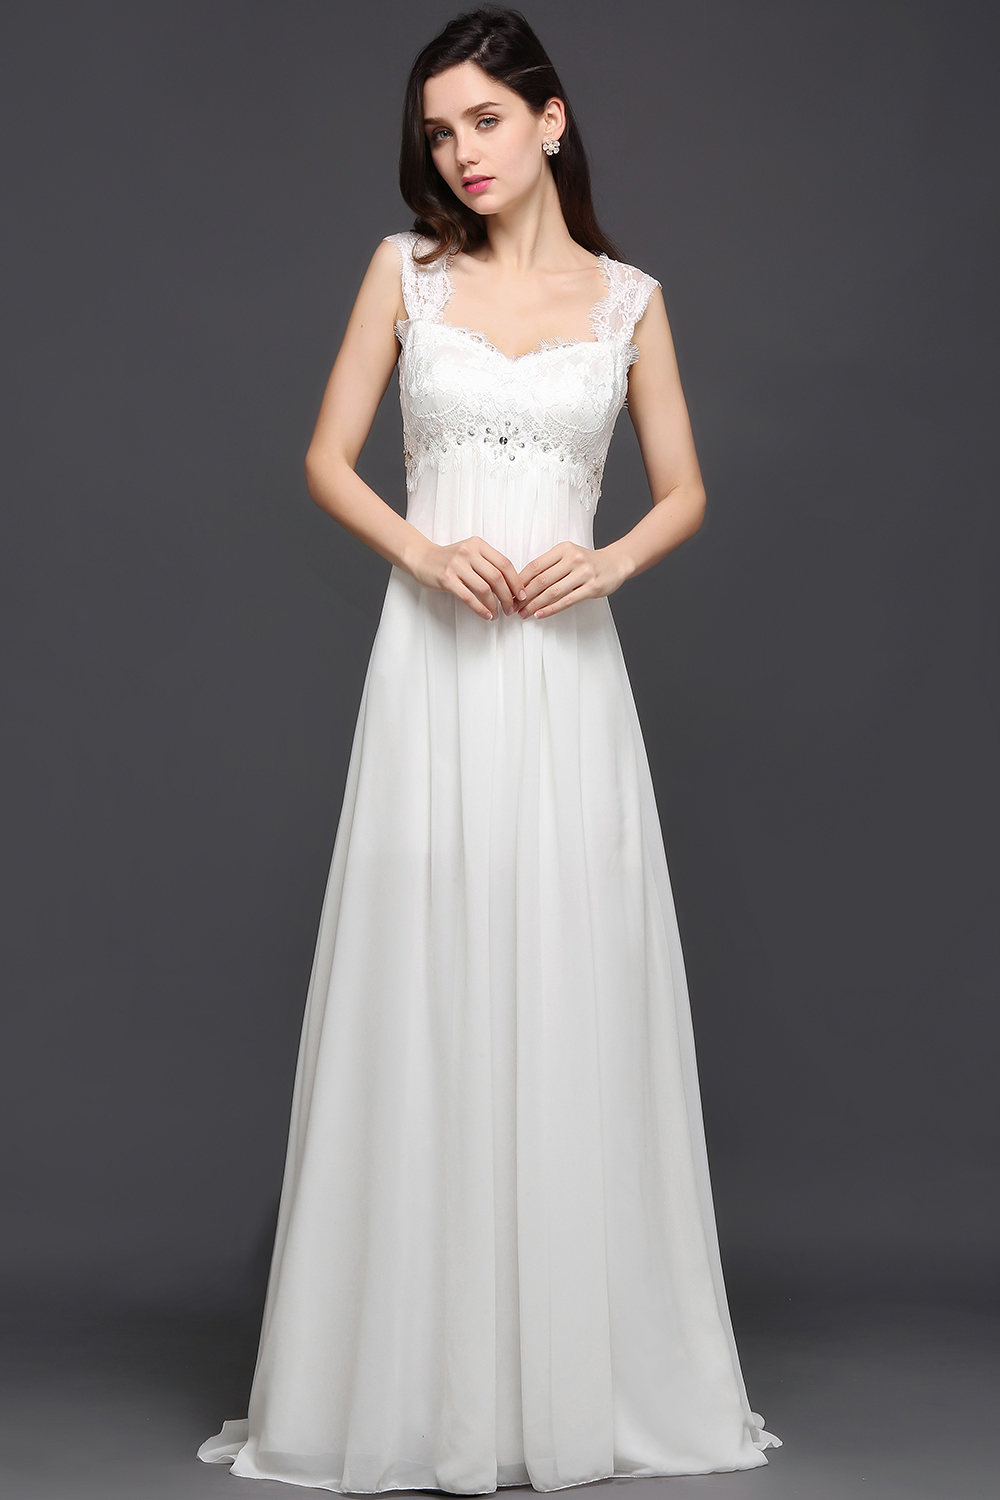 Maternity Wedding Dresses Stand Out